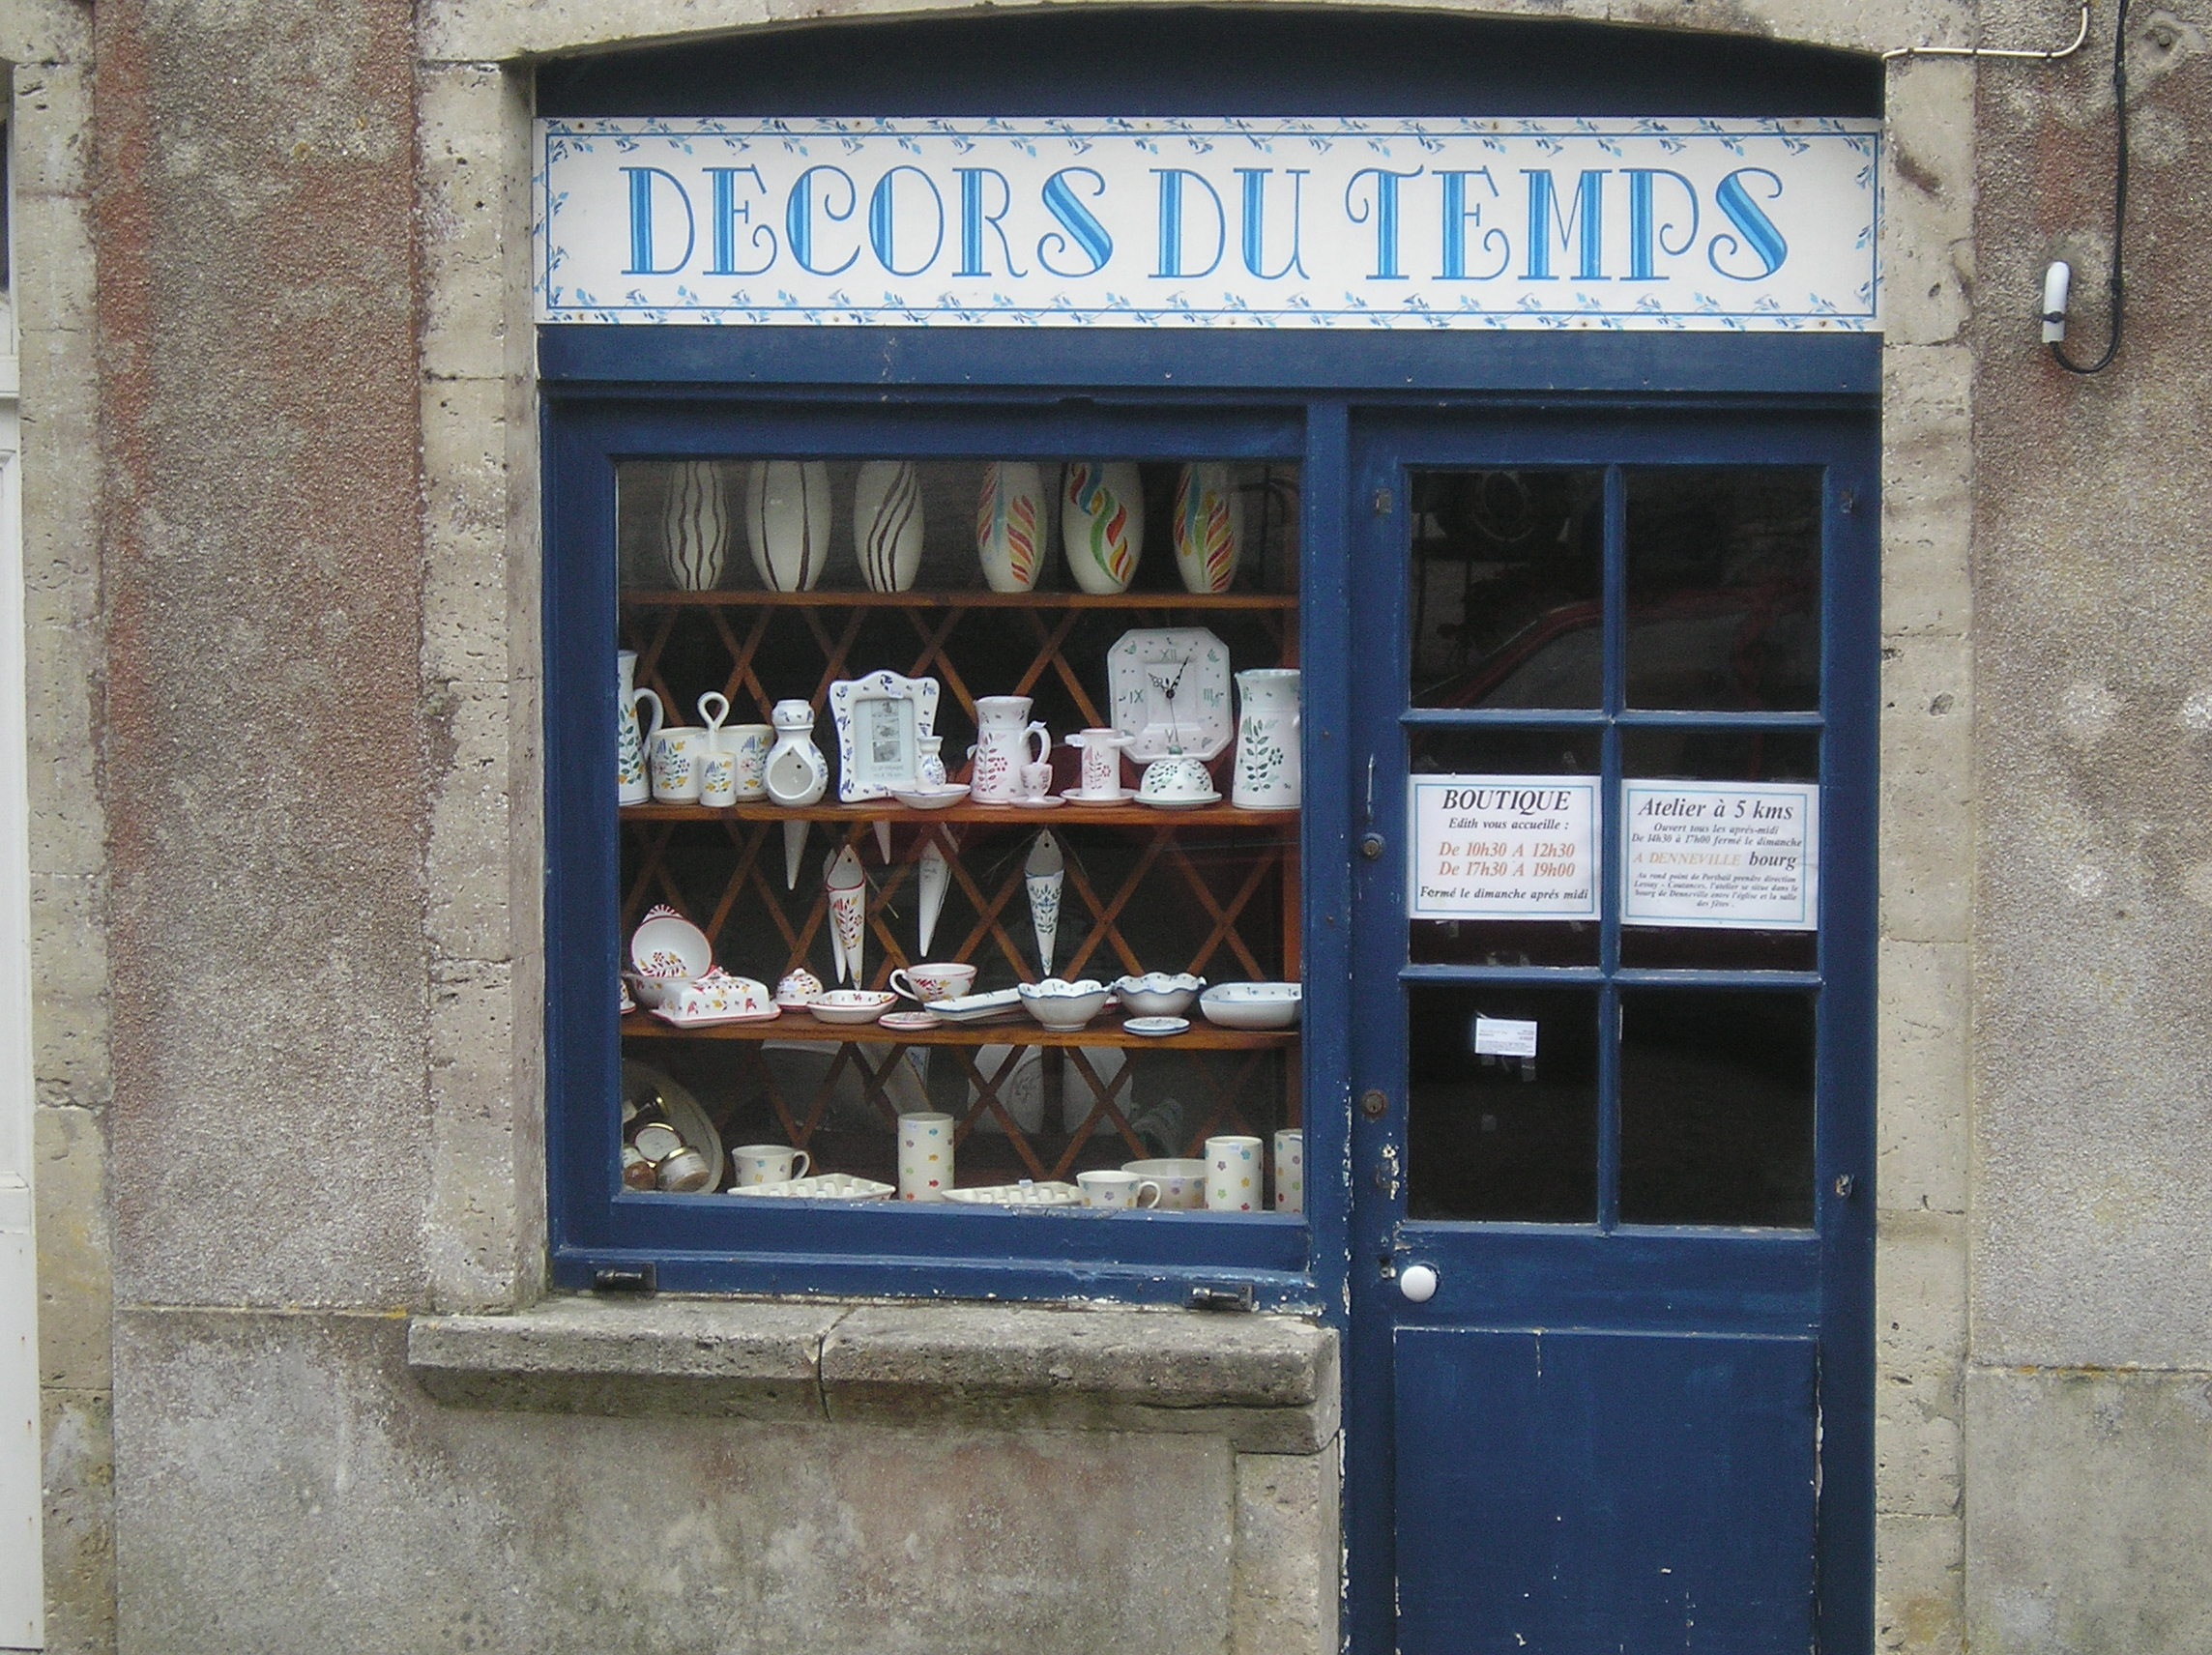 DECORS DU TEMPS